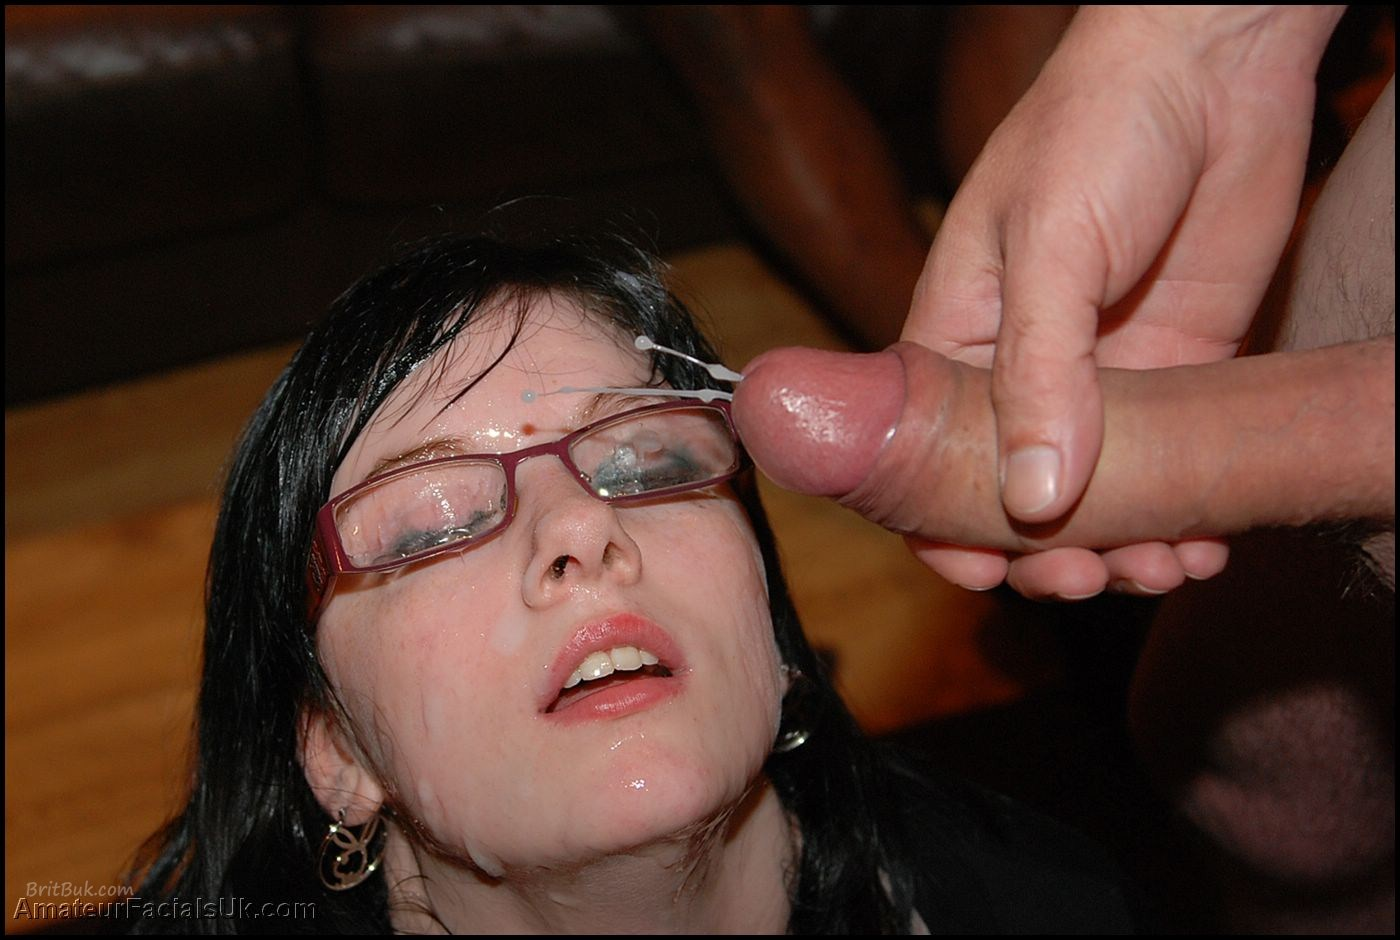 Jessica Lo pretty face decorated with cum